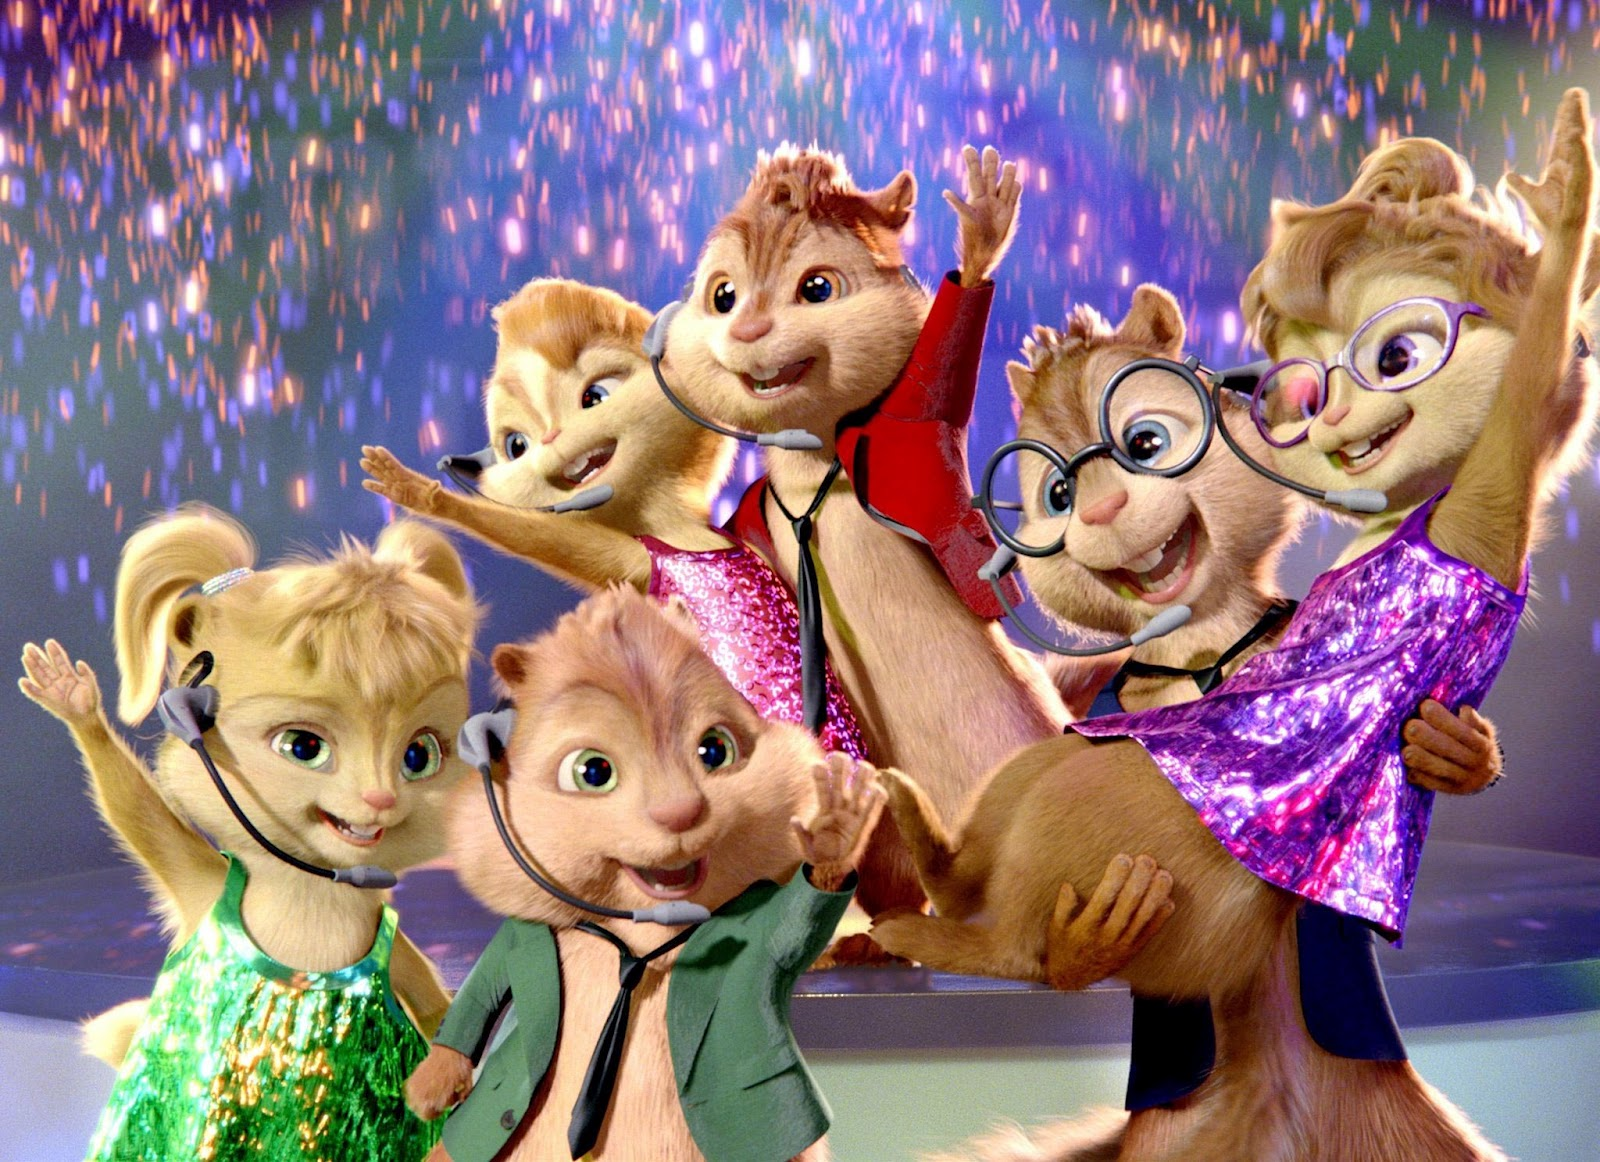 alvin and the chipmunks - photo #1